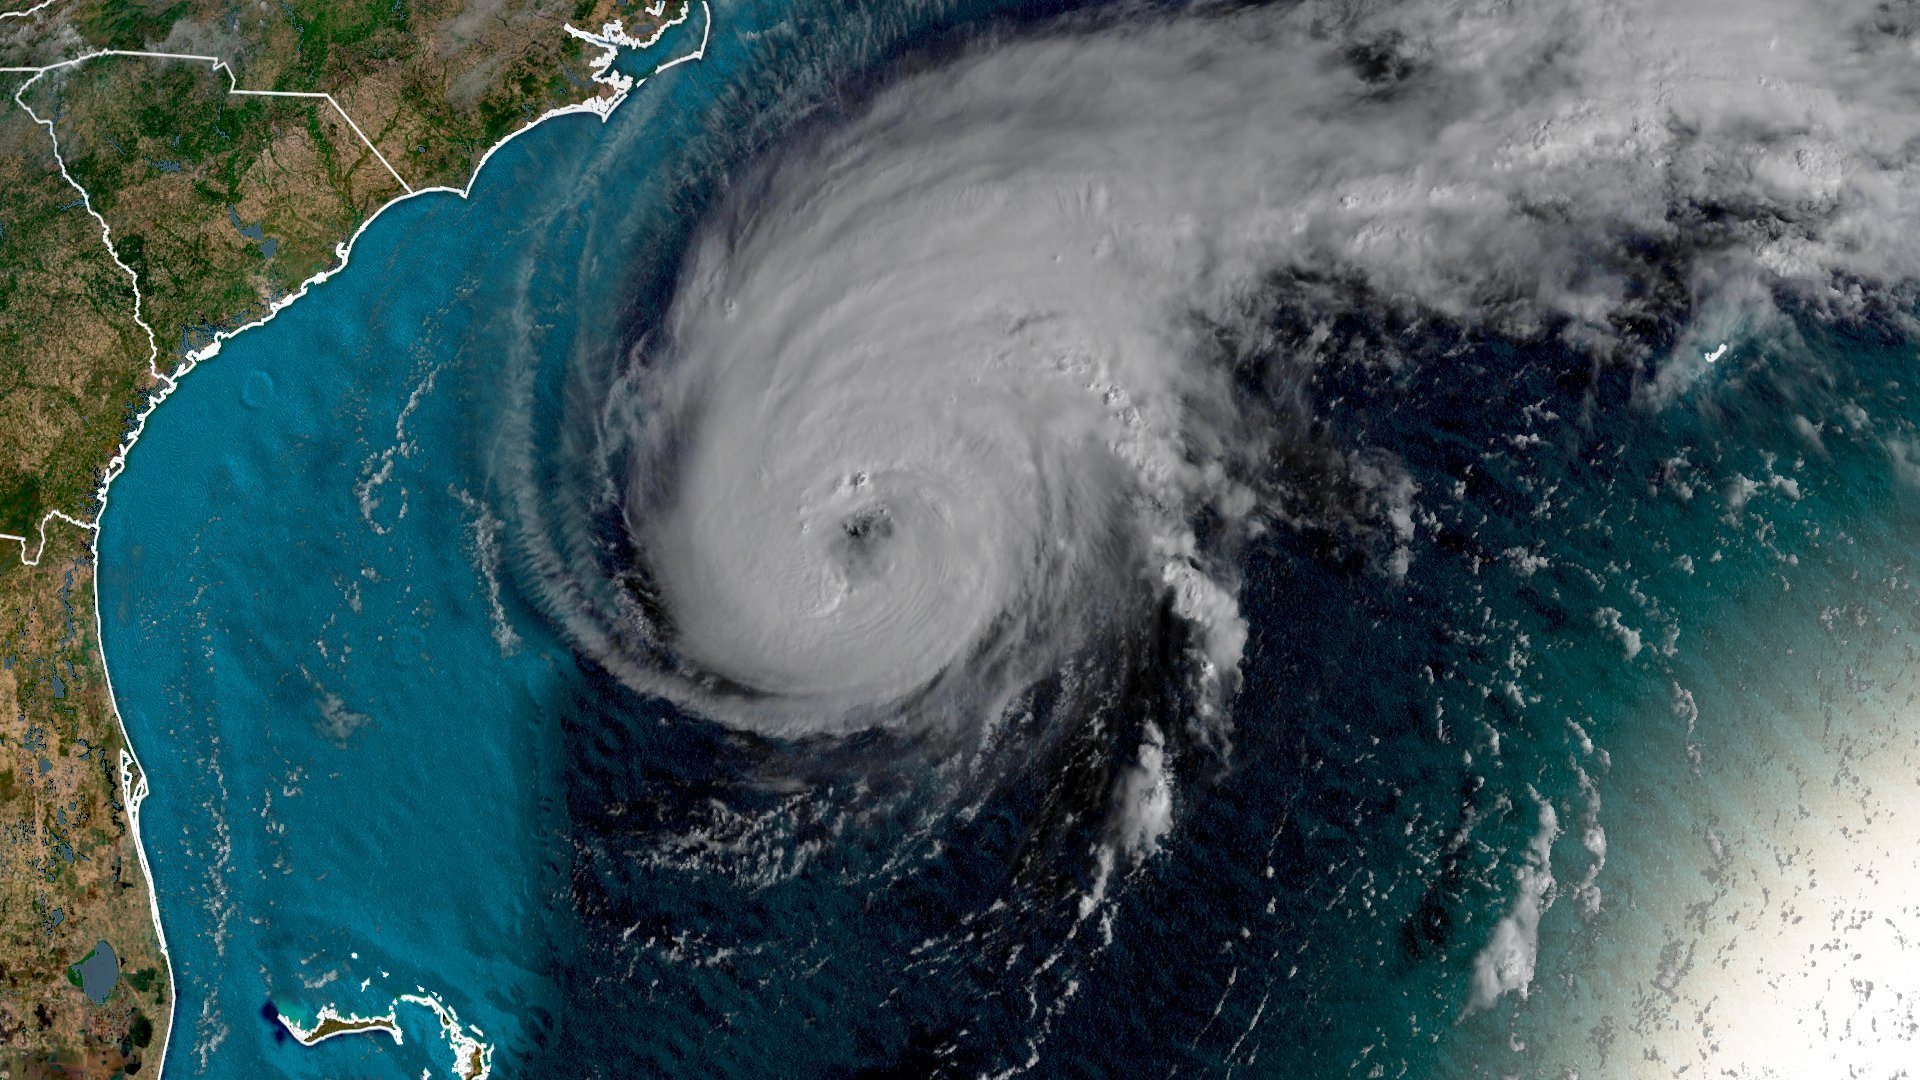 Hurricane Humberto is seen as a Category 2 storm with wind speeds of 100 mph before it was upgraded to a Category 3 on Sept. 17, 2019. (Credit: CNN)